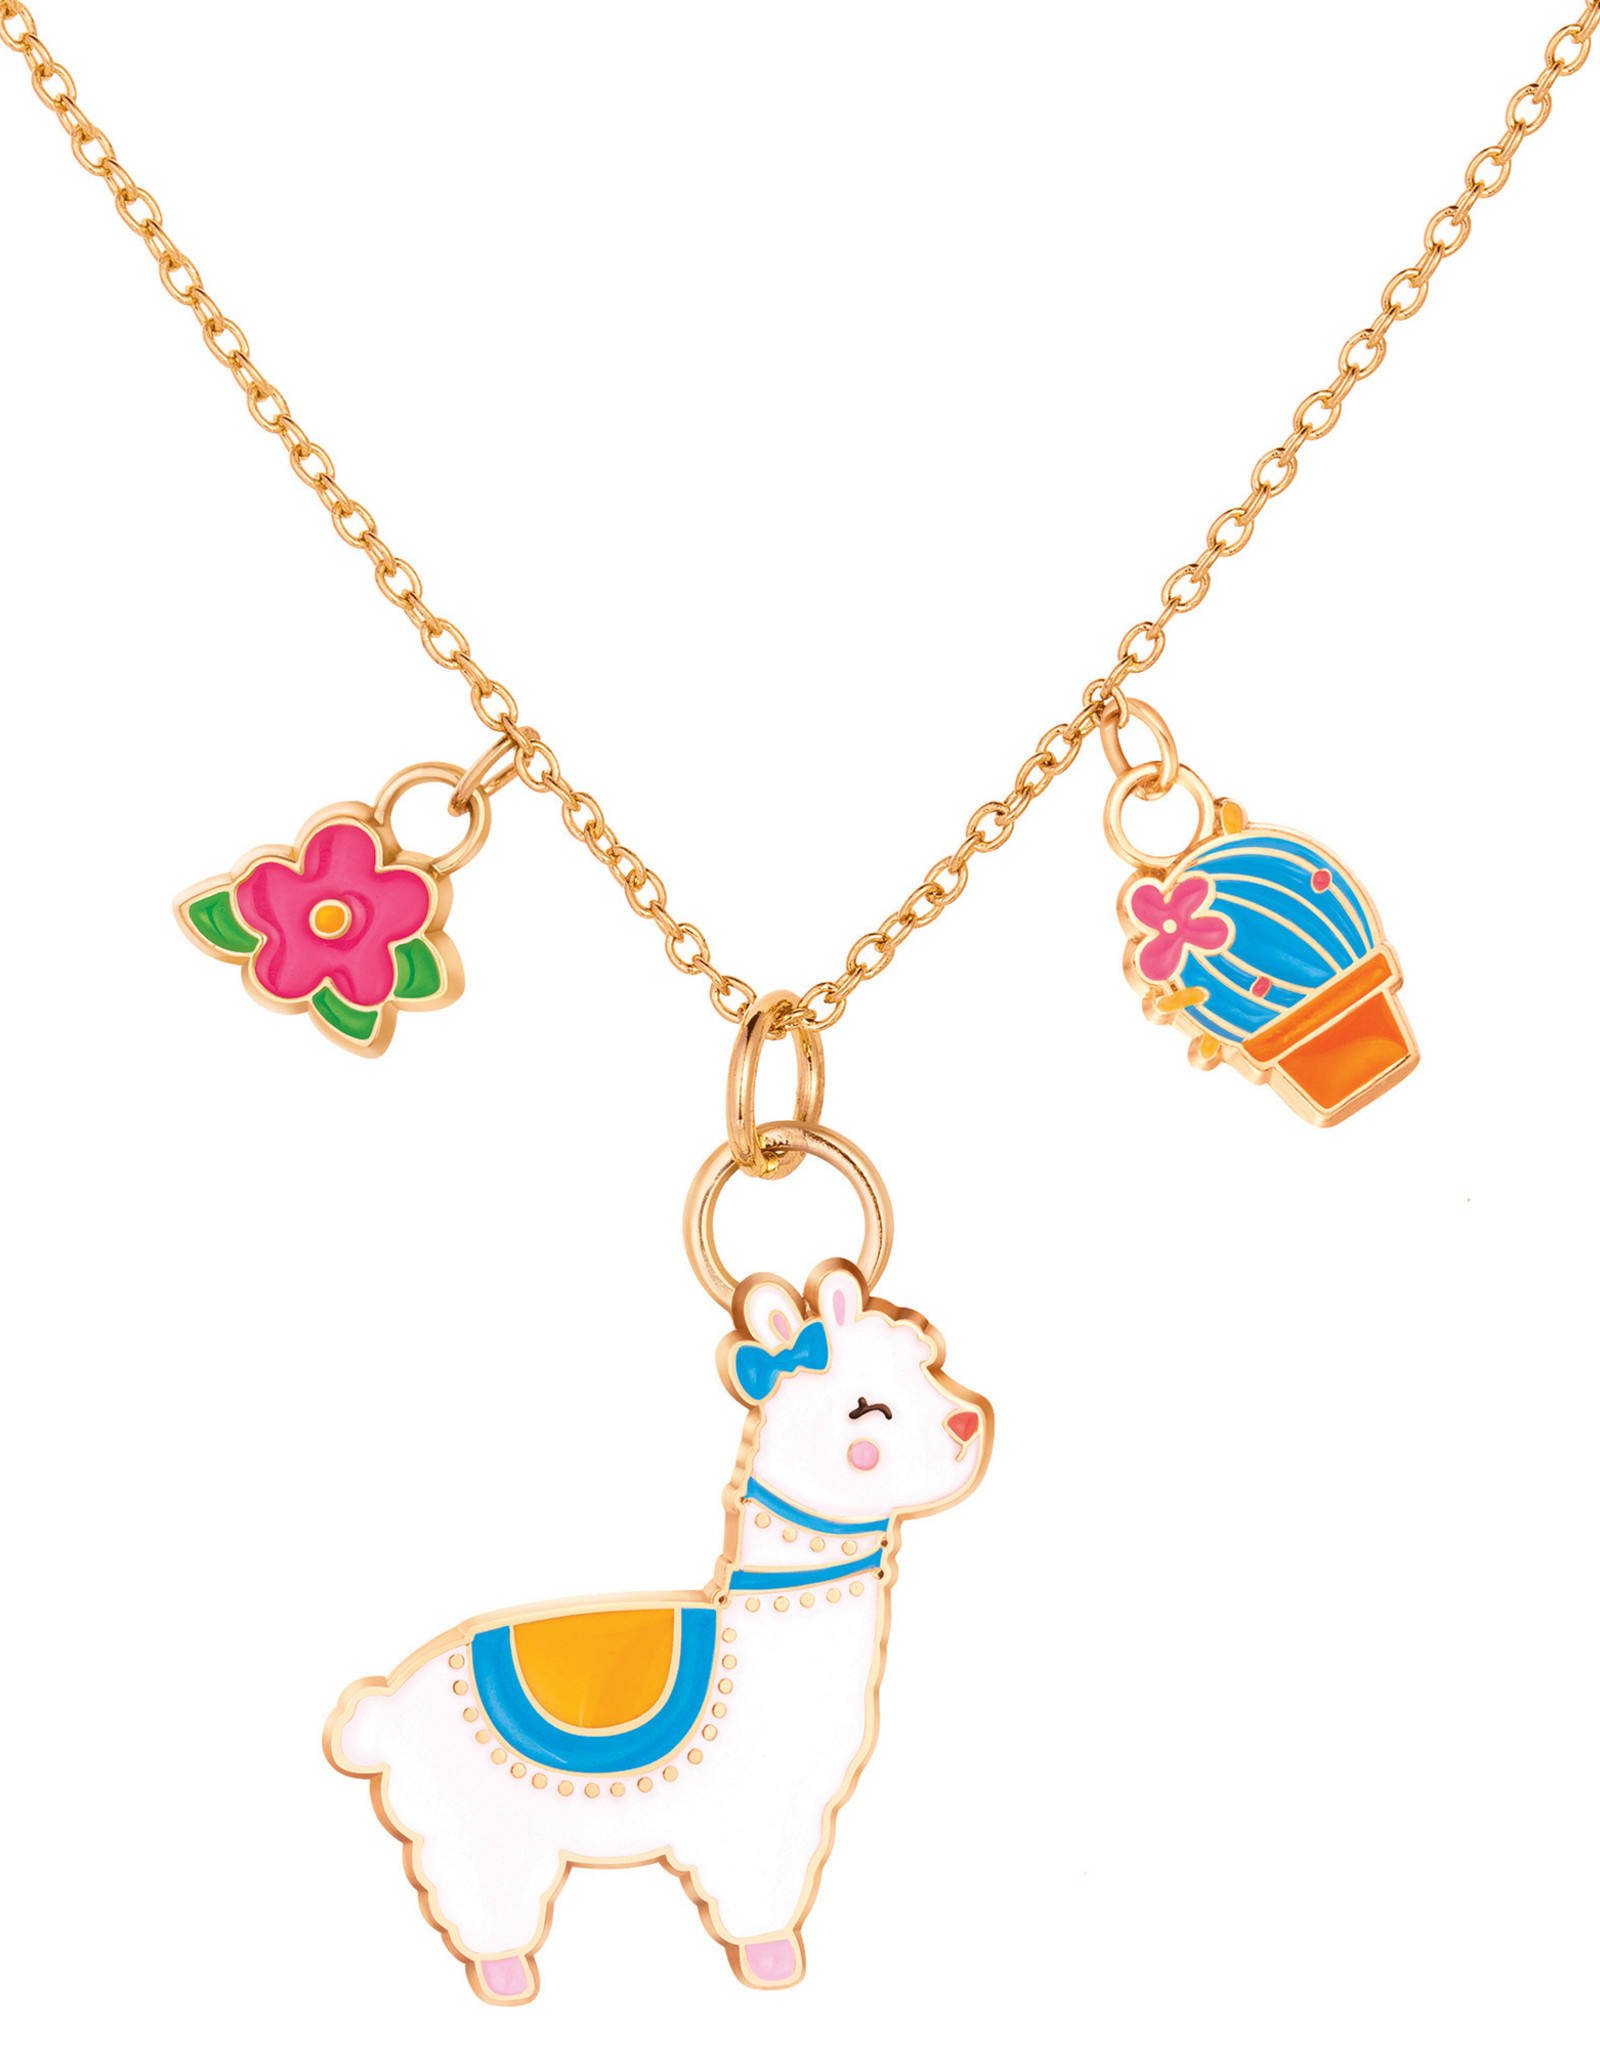 Girl Nation Charming Whimsy Necklace - Llama